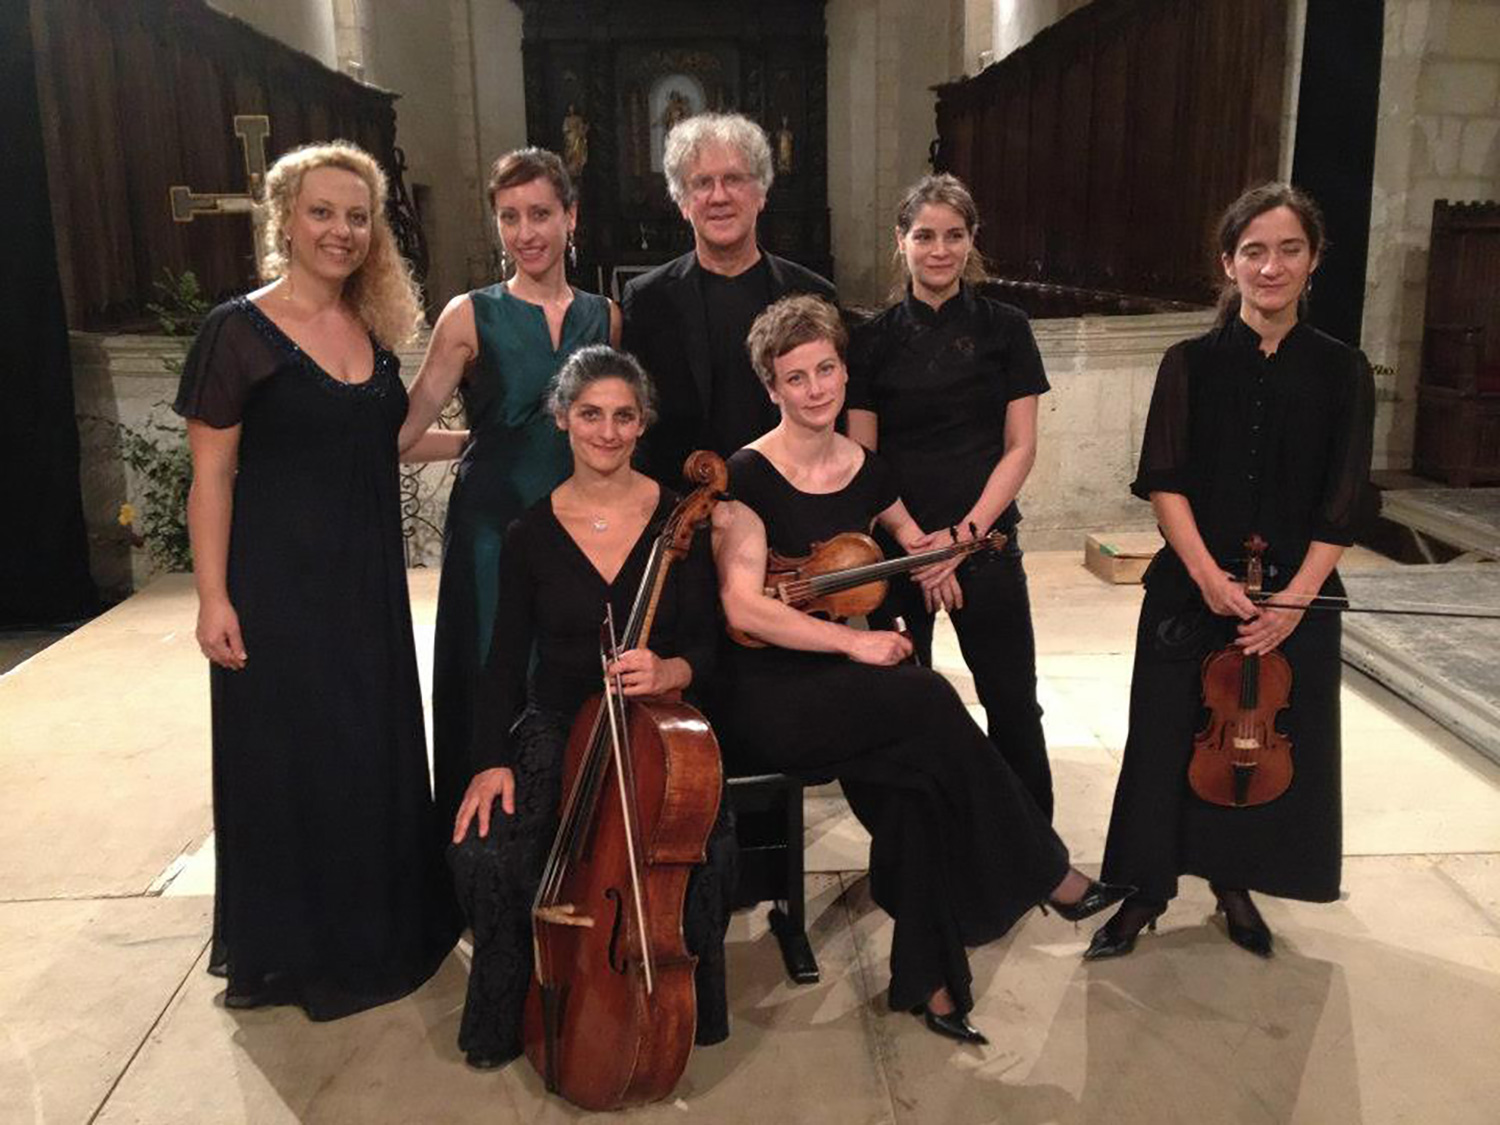 Lidia Vinyes Curtis posing with Martin Gester and musicians at Perigord festival